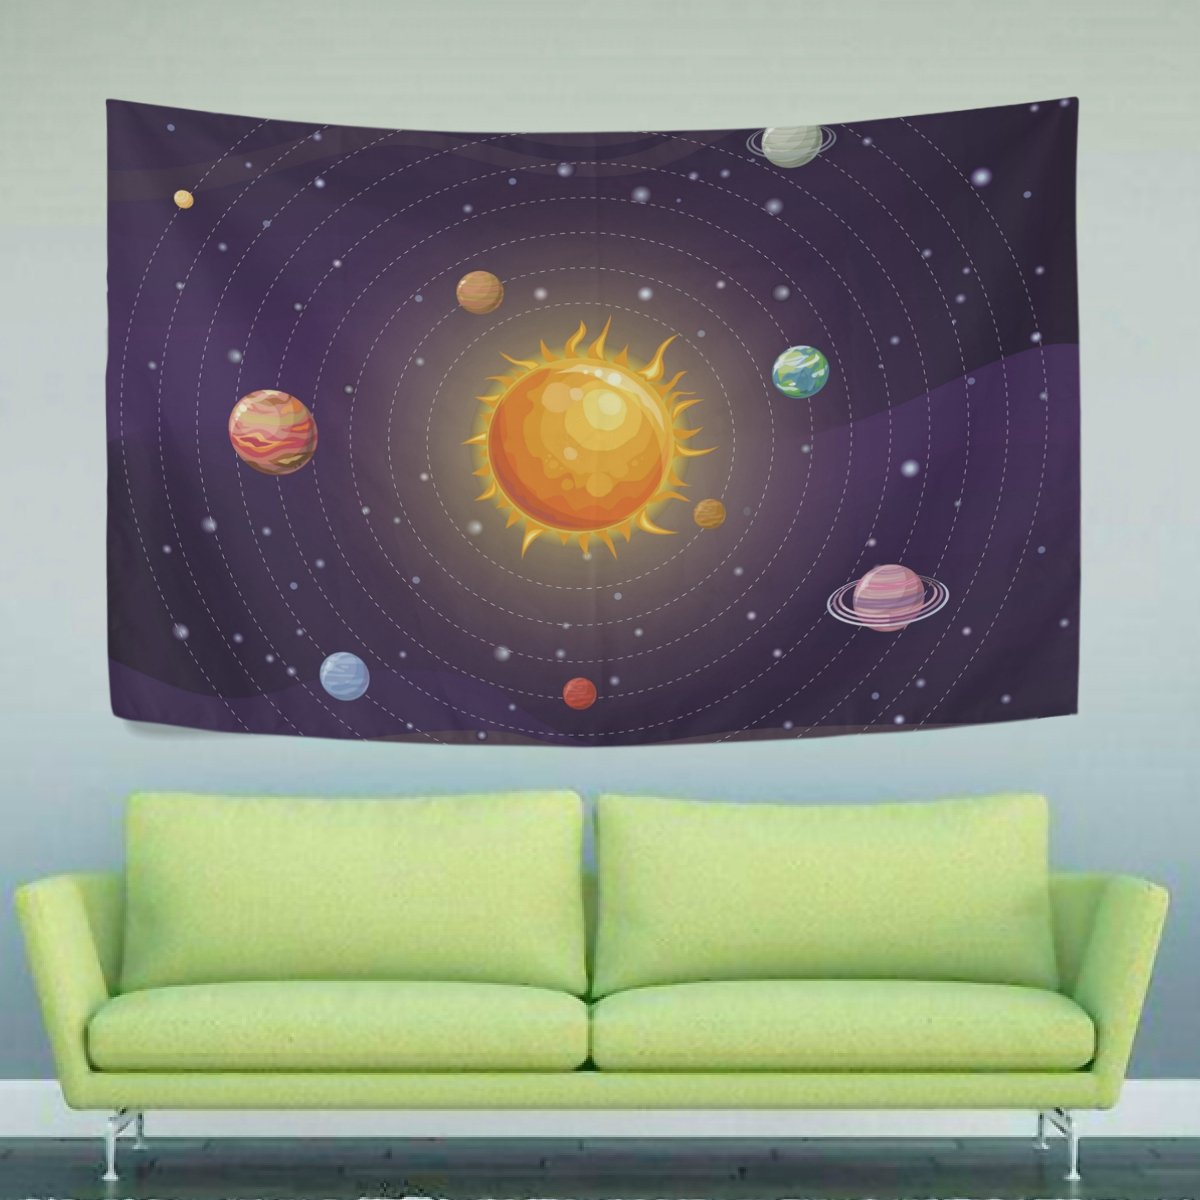 WIHVE Tapestry Space Solar System Tapestry Wall Hanging Home Decor for Living Room Bedroom Dorm Room 60 x 51 Inches